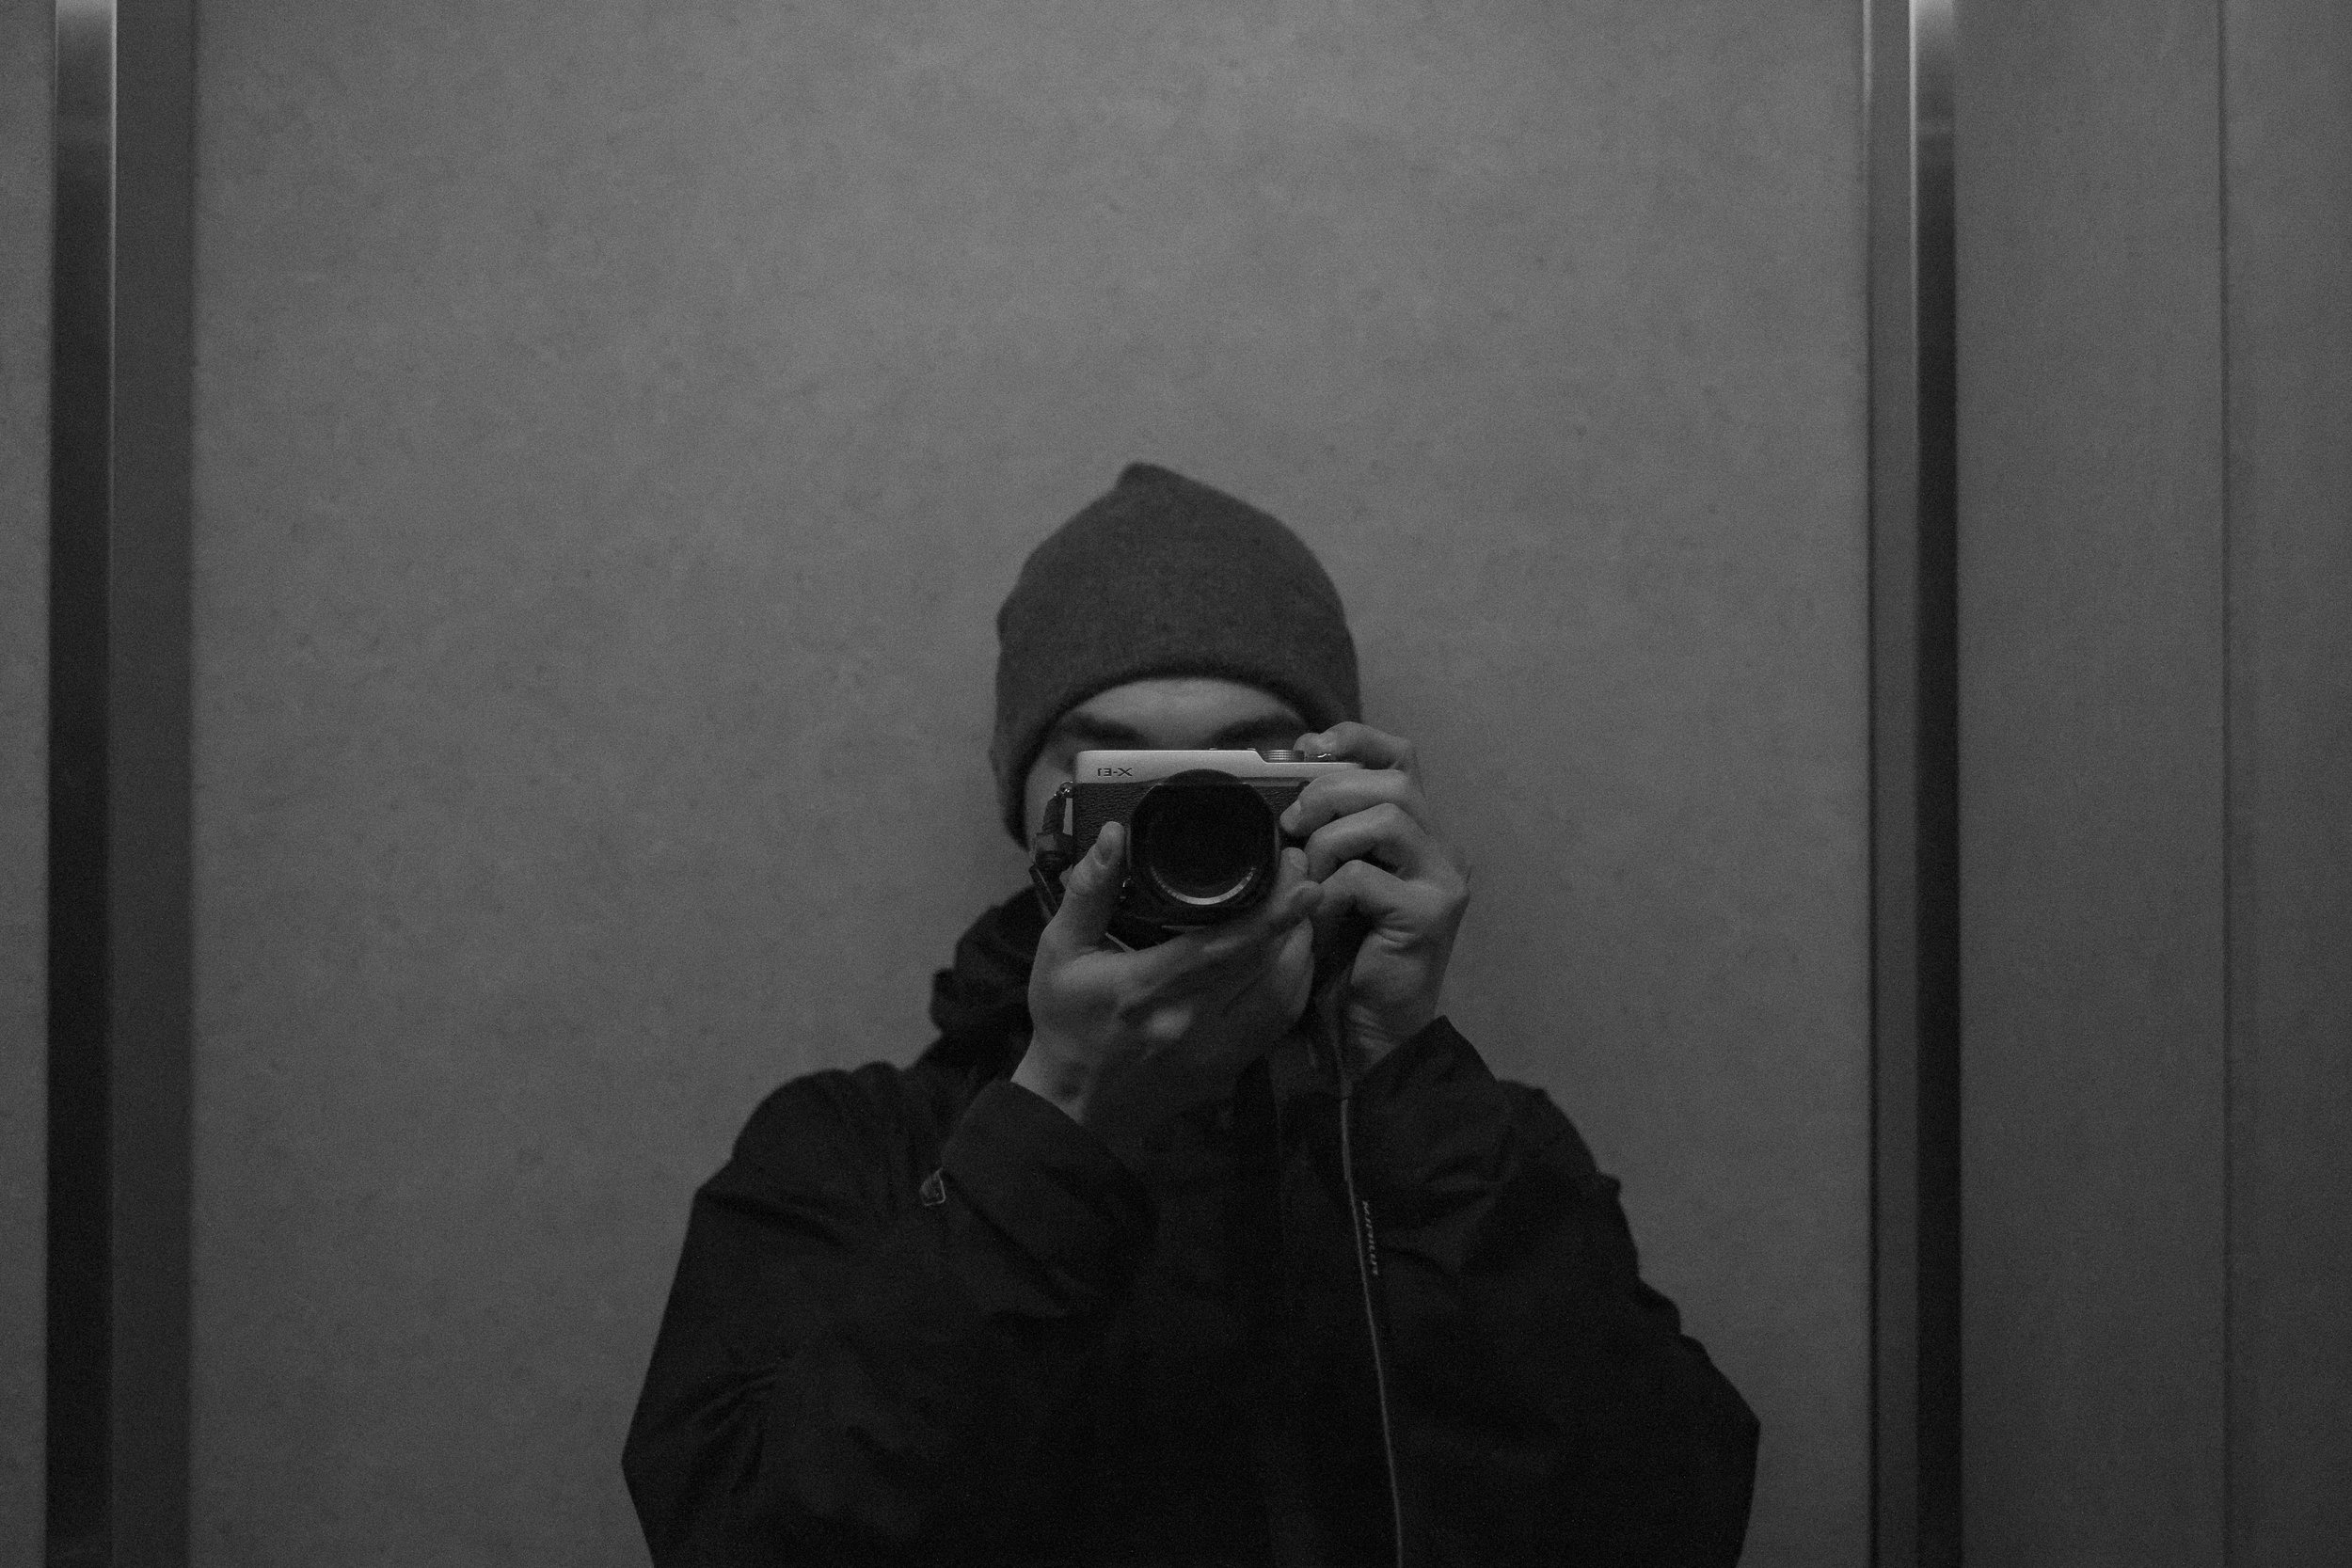 Self Portrait - 2017-??-??: The start of a photo-series that has no purpose other than documenting everyday life.